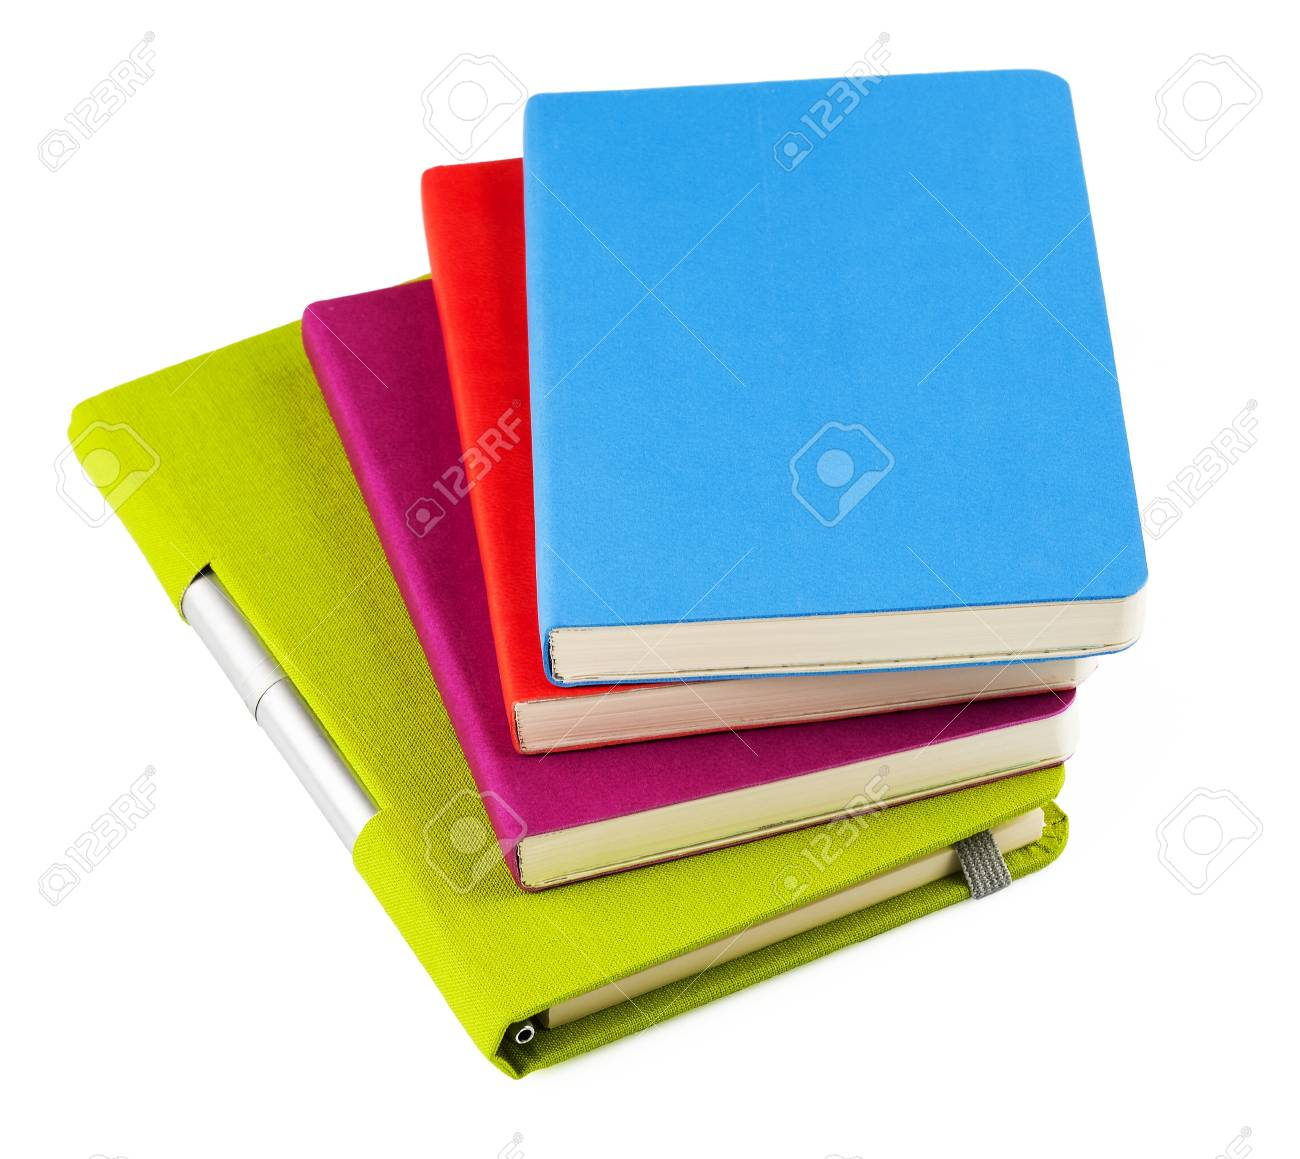 Colourful notebooks with open notebook and ballpoint pen isolated on white background Stock Photo - 18011003